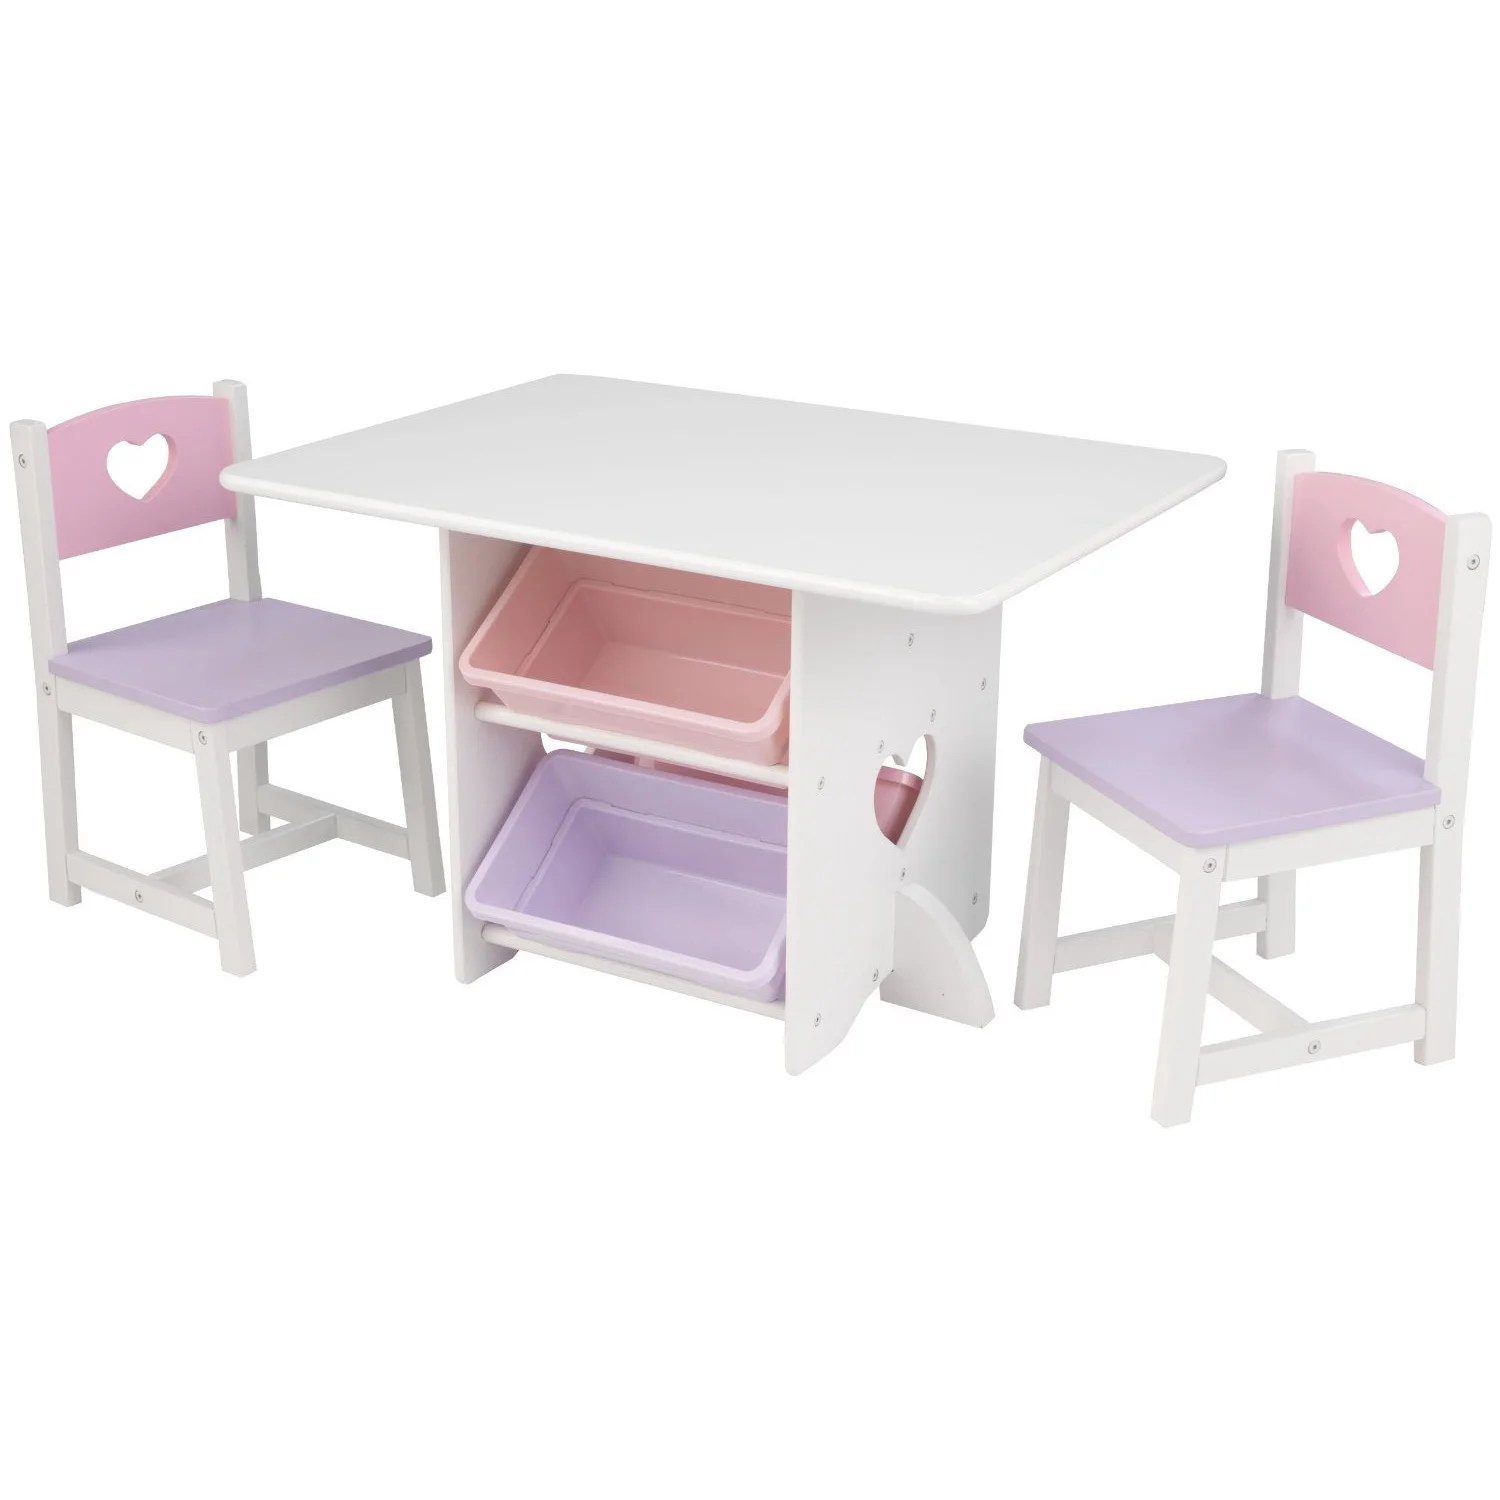 Kidkraft Heart Table And Chair Set Kidkraft Heart Table And Chair Set